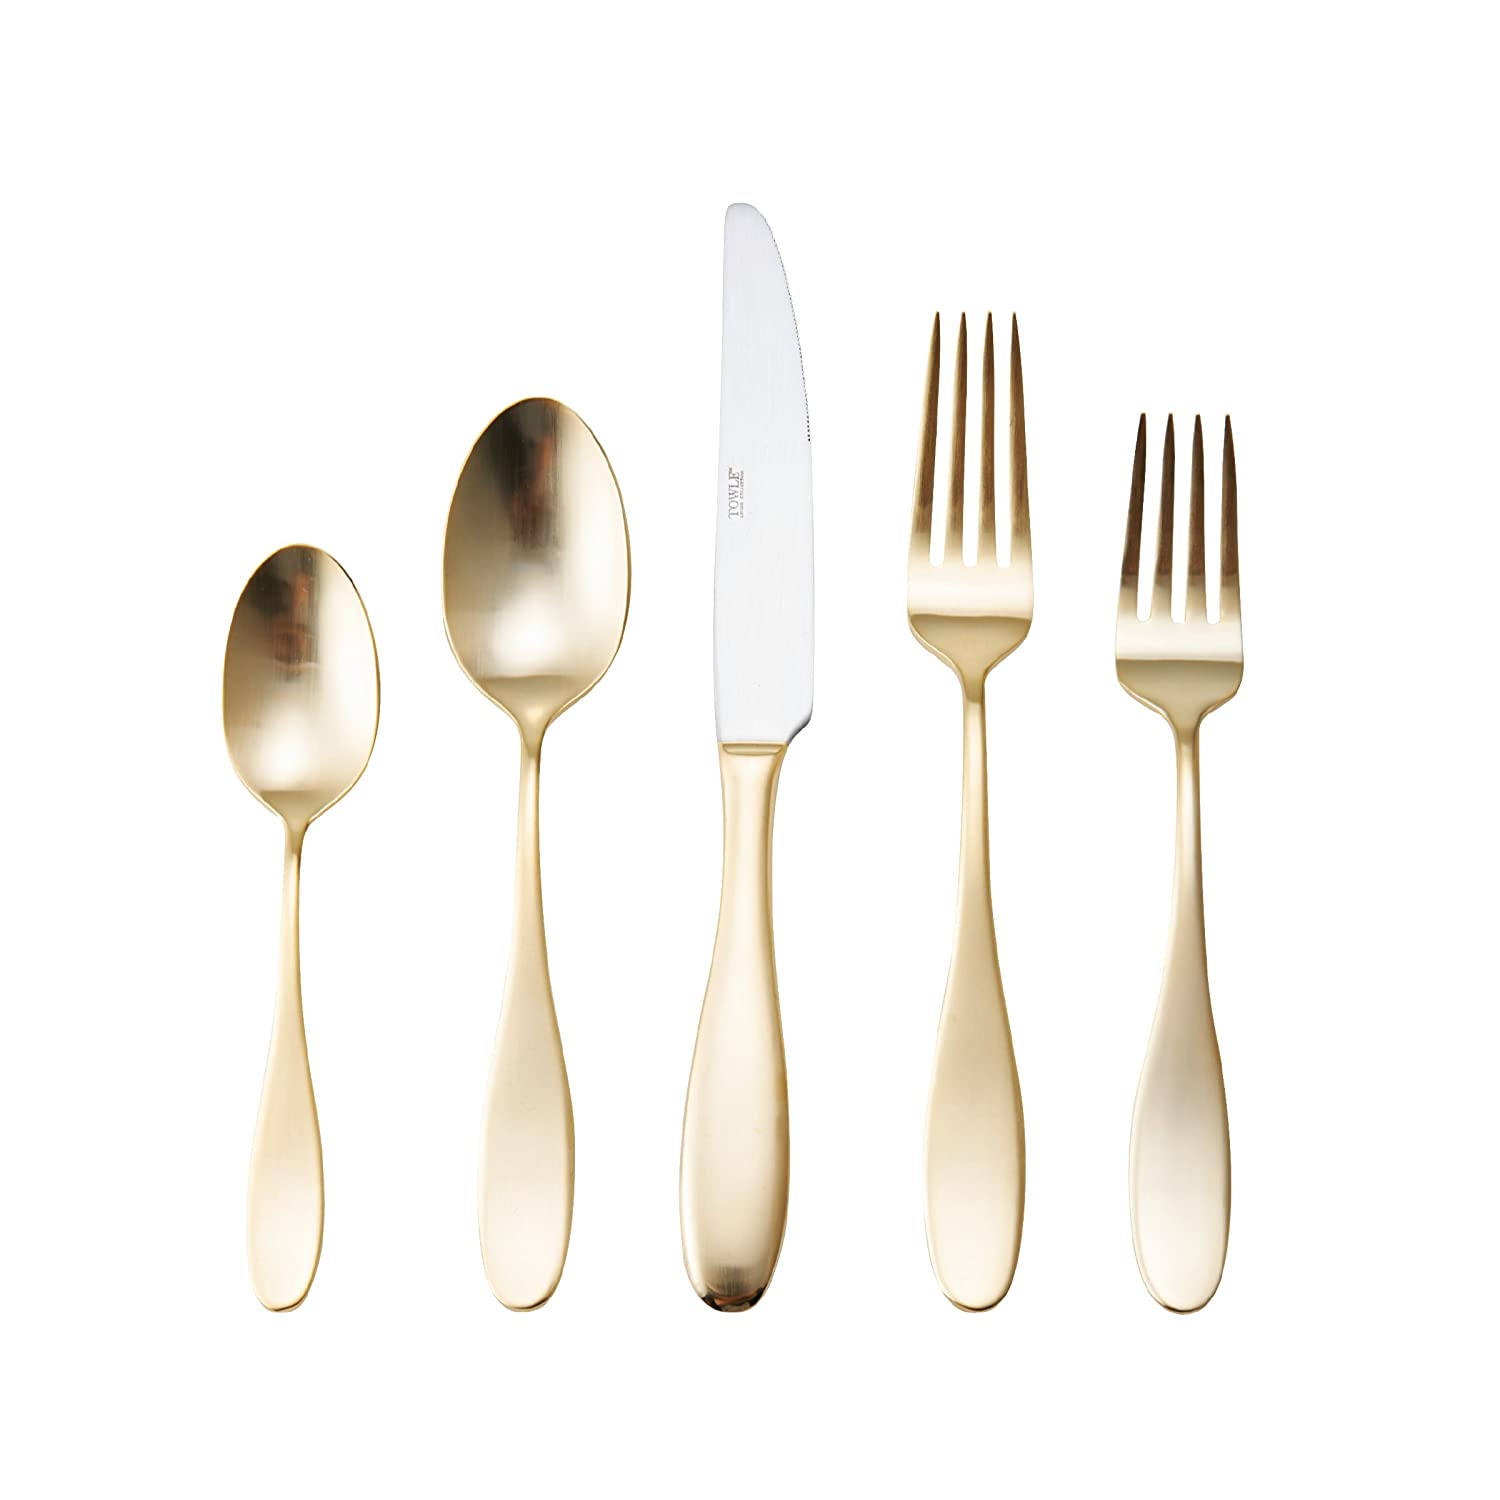 Towle Living 5147980 Addica 20-Piece Forged Stainless Steel Flatware Set Service for 4